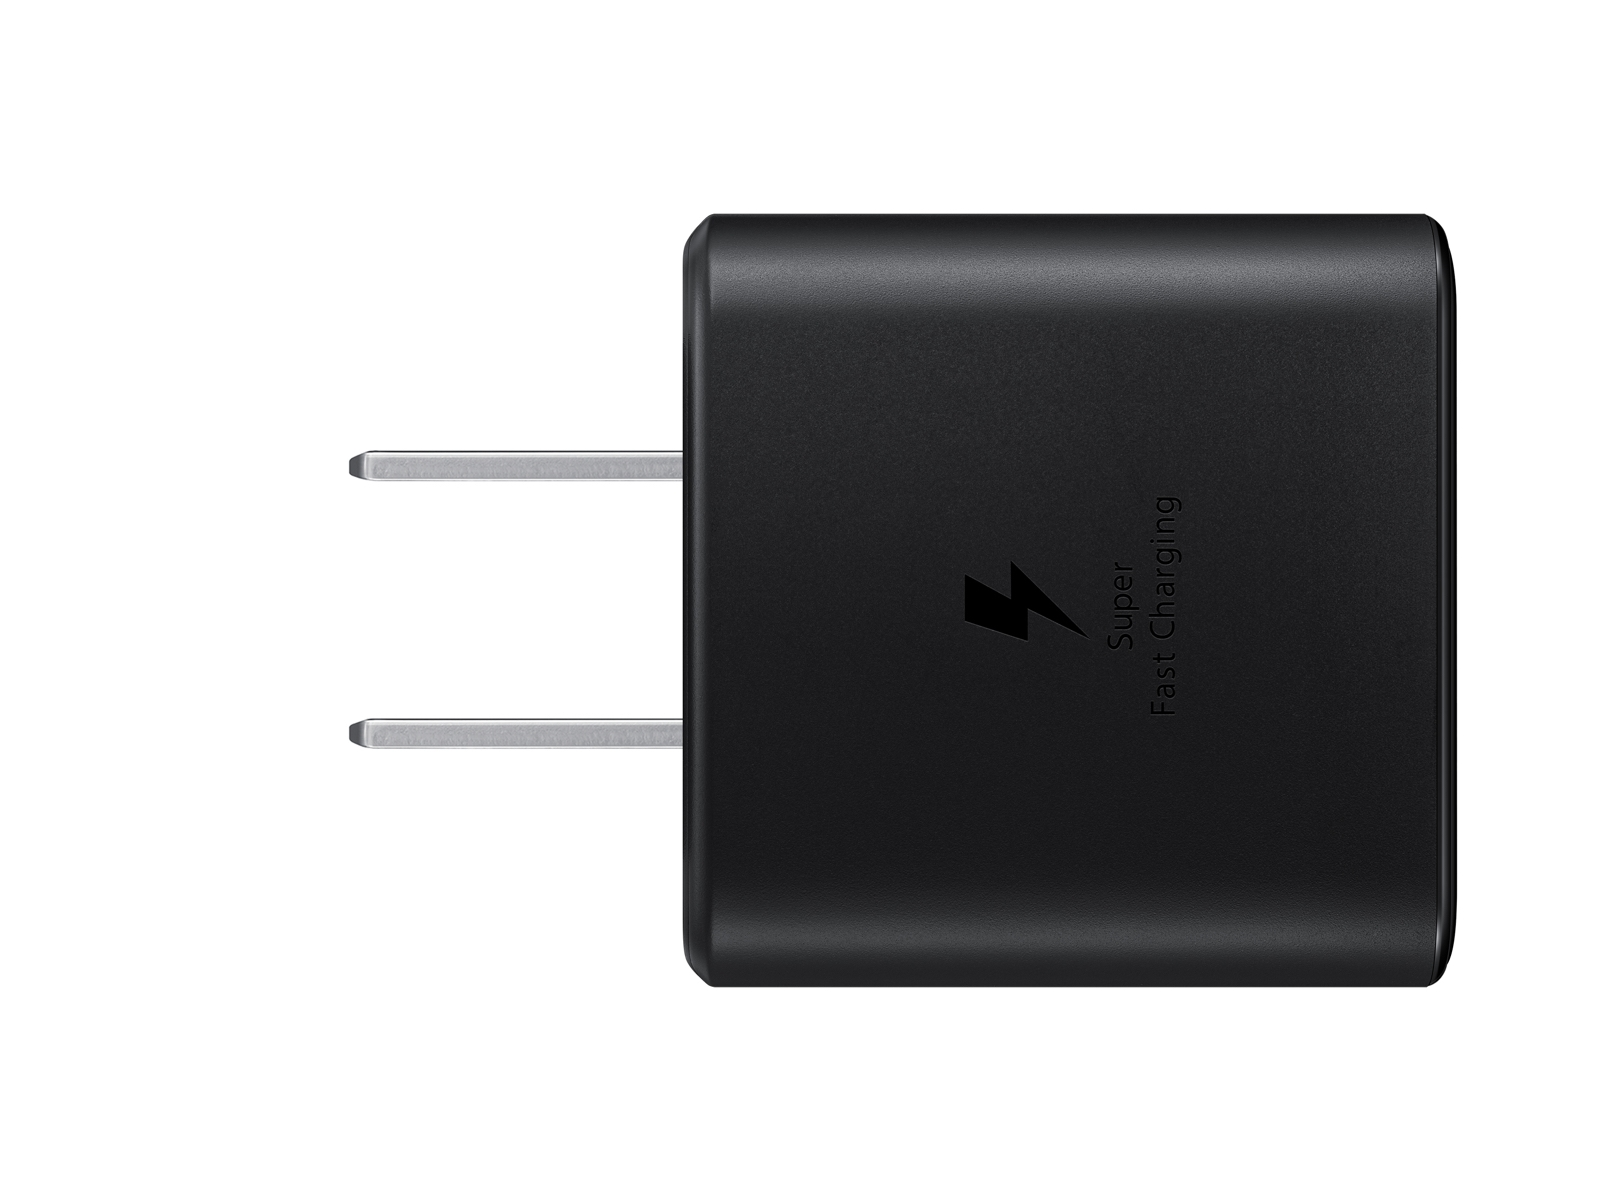 45W USB-C Fast Charging Wall Charger, Black